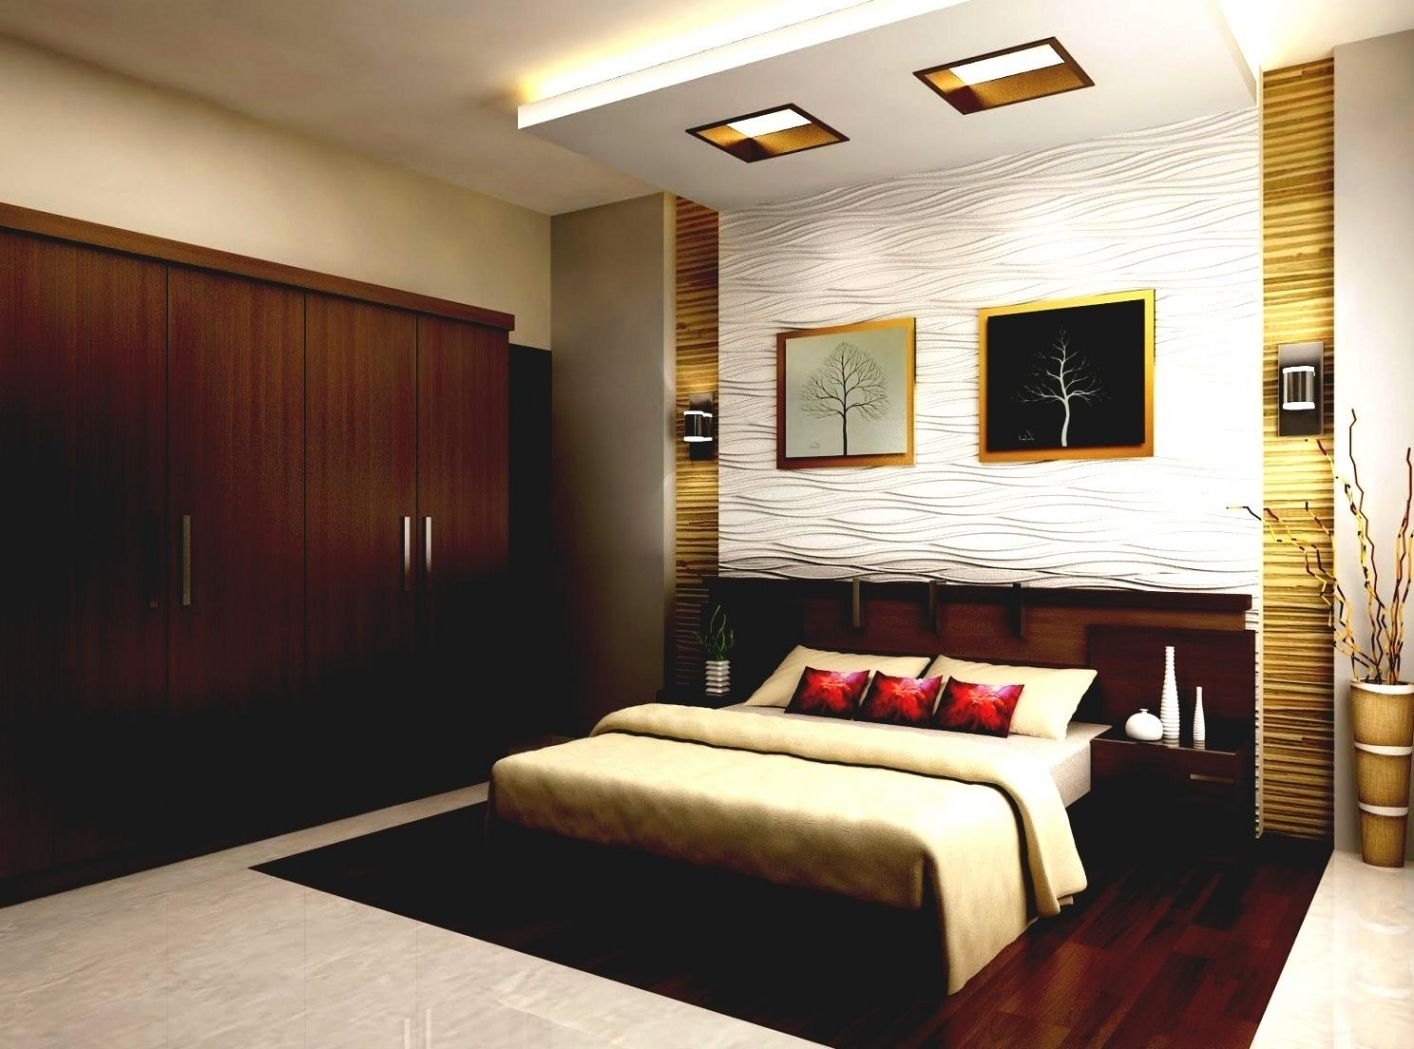 Classic Hall Designs 20 Awesome Ideas Freshouz Com Ceiling Design Bedroom Simple Master Bedroom Ideas Interior Design Bedroom Small